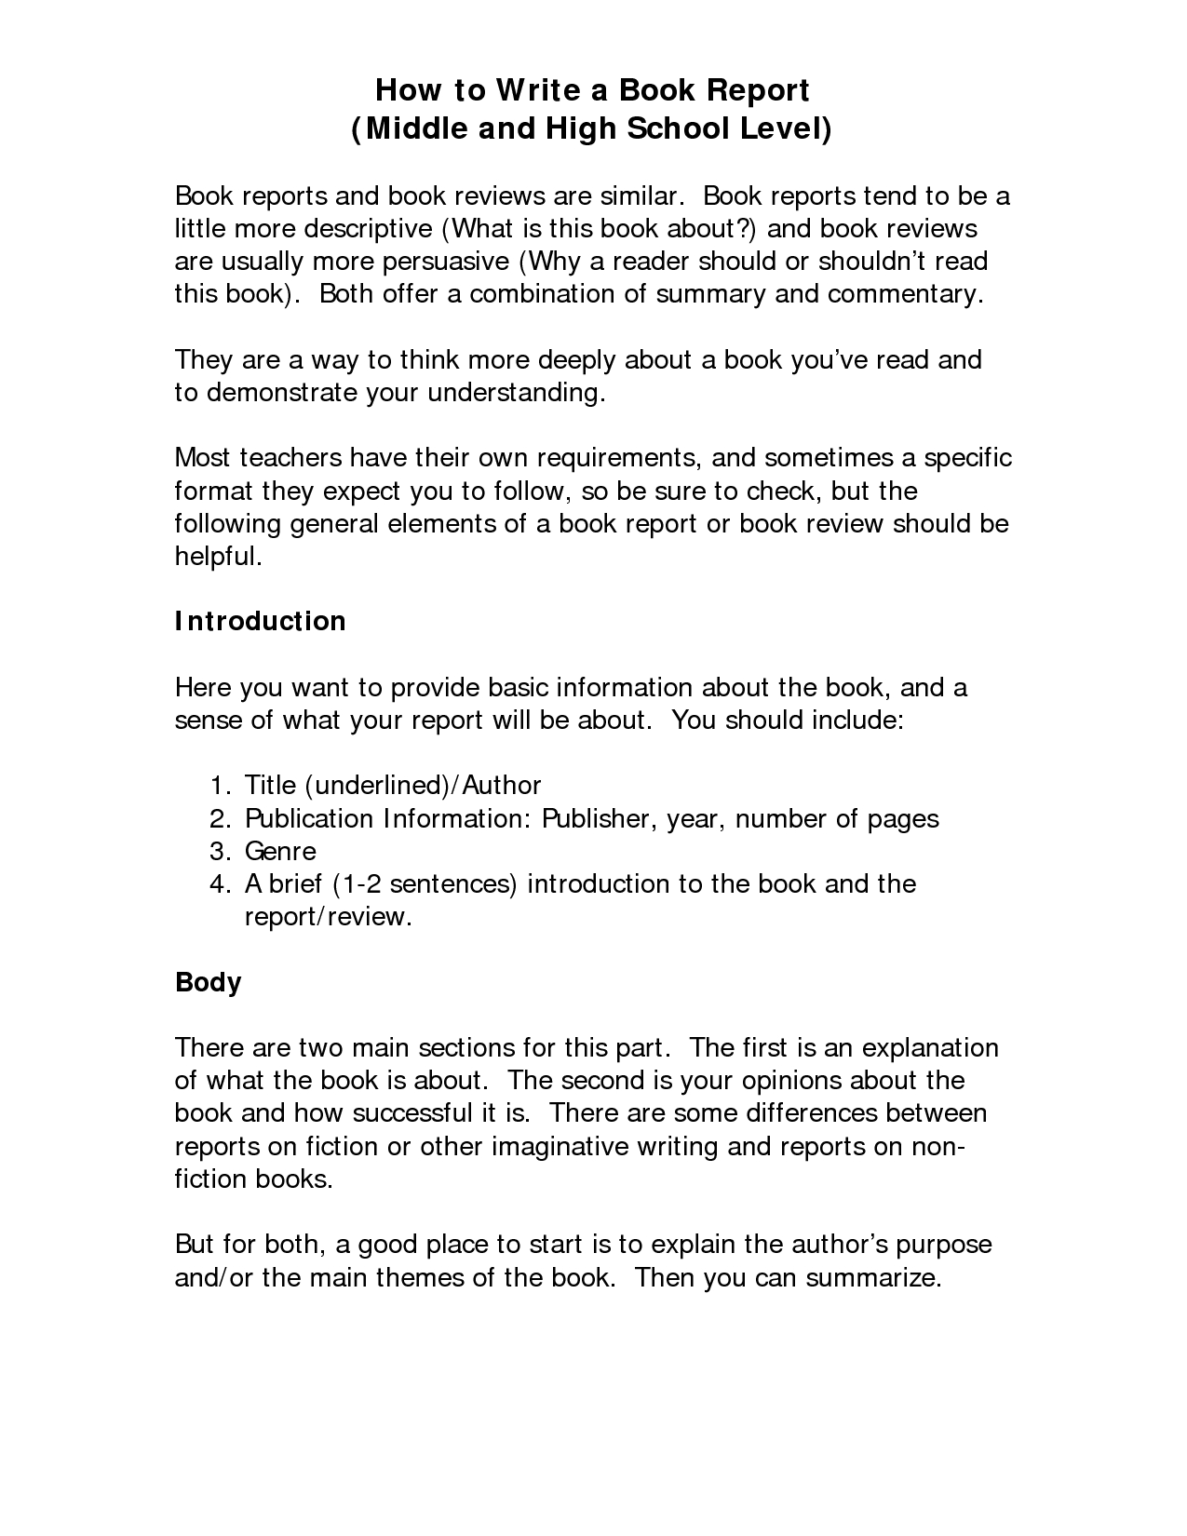 How To Write A Book Review Example - arxiusarquitectura